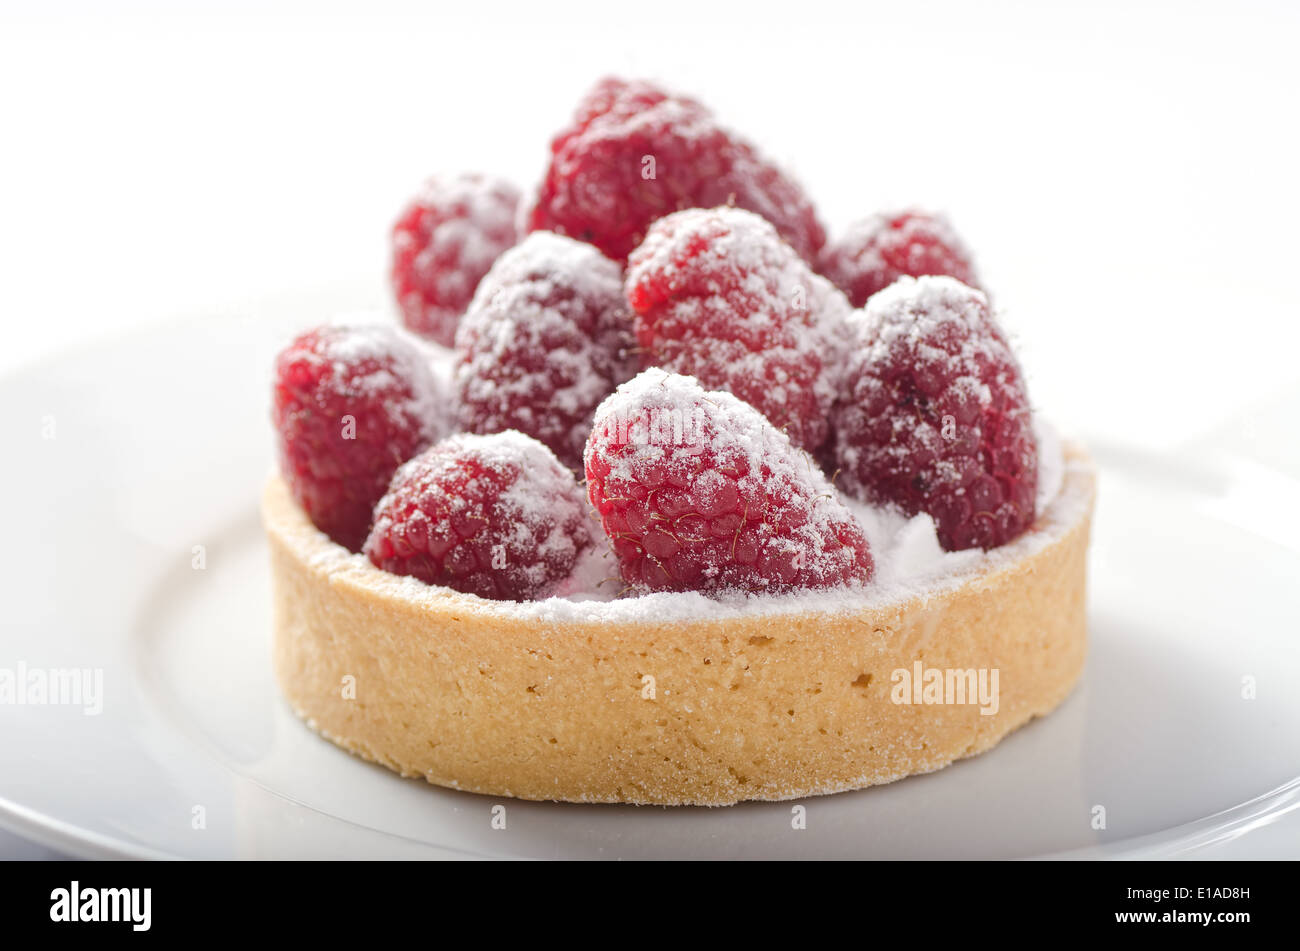 A delicious fresh raspberry tart dusted with icing sugar. - Stock Image